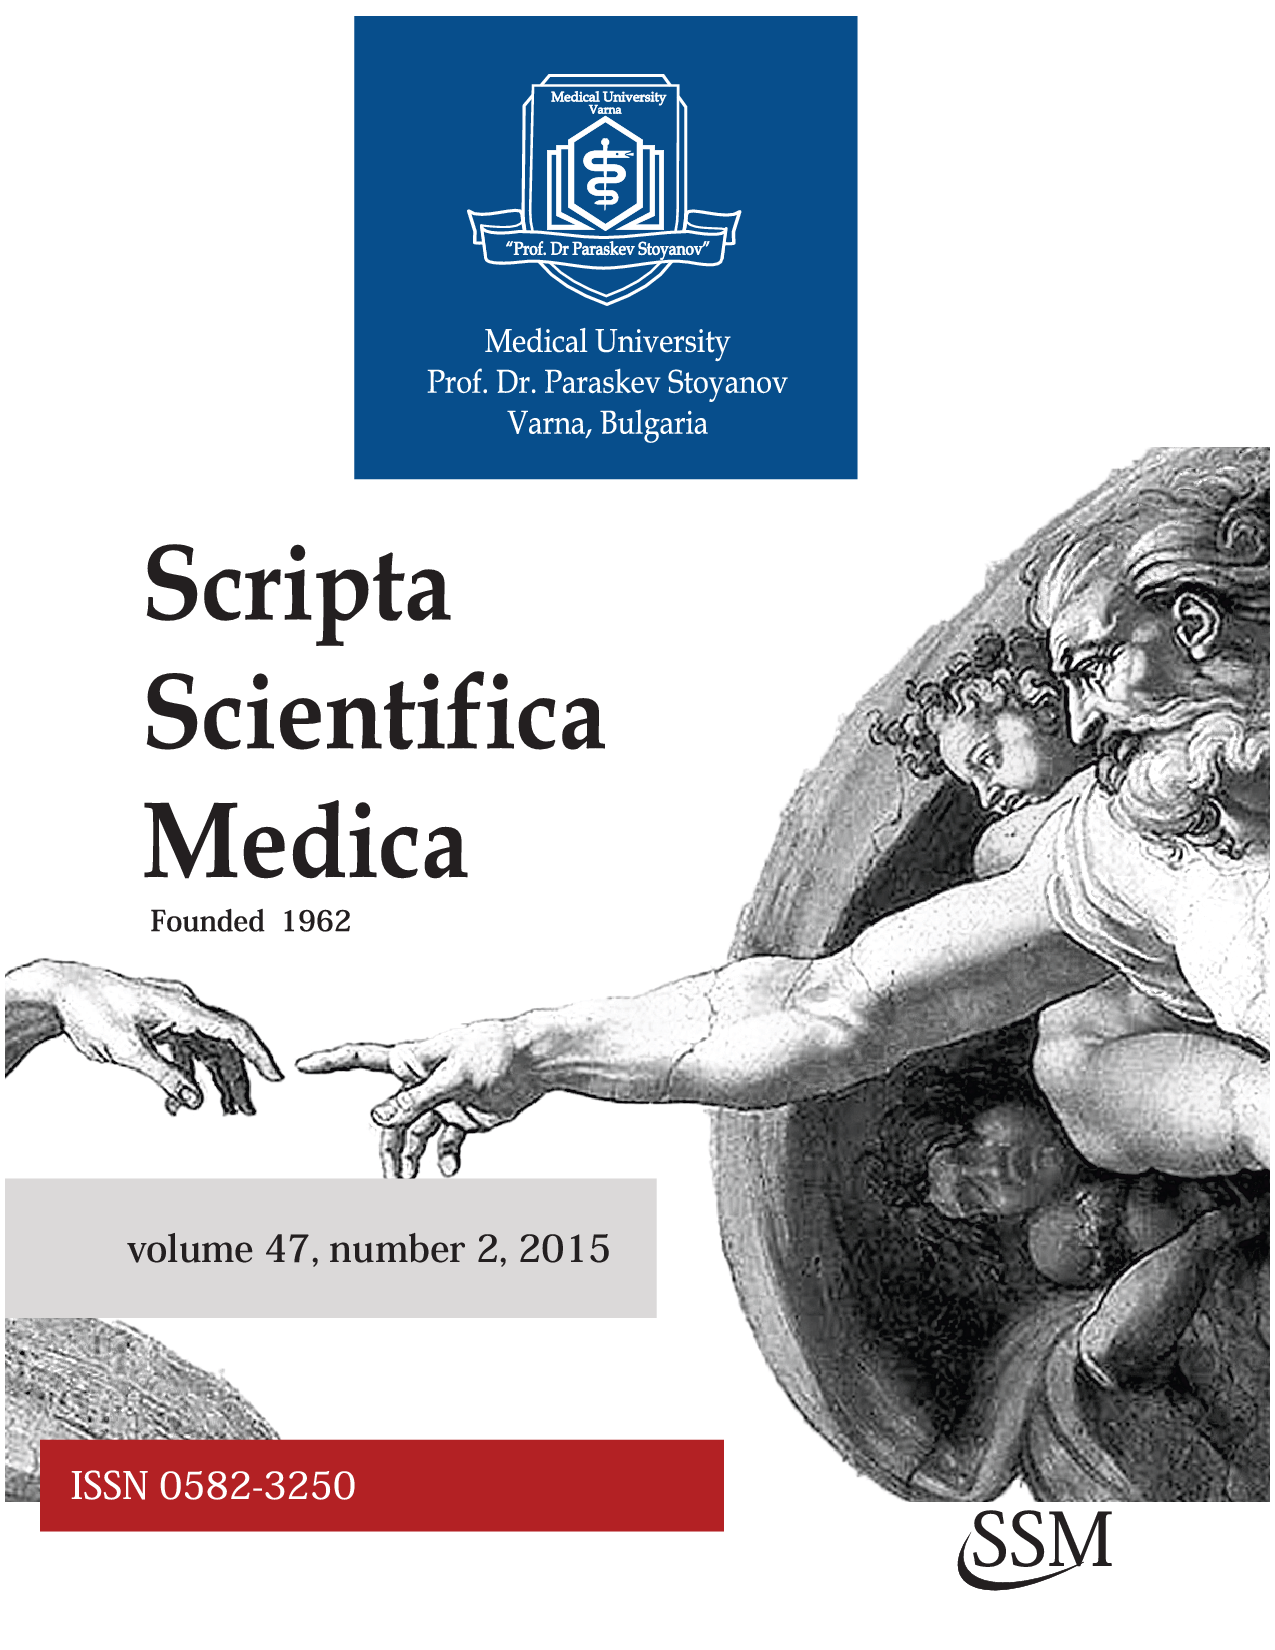 "Issue No. 2 for 2015 of the University Scientific Journal ""Scripta Scientifca Medica"" Has Been Published. Available Online"